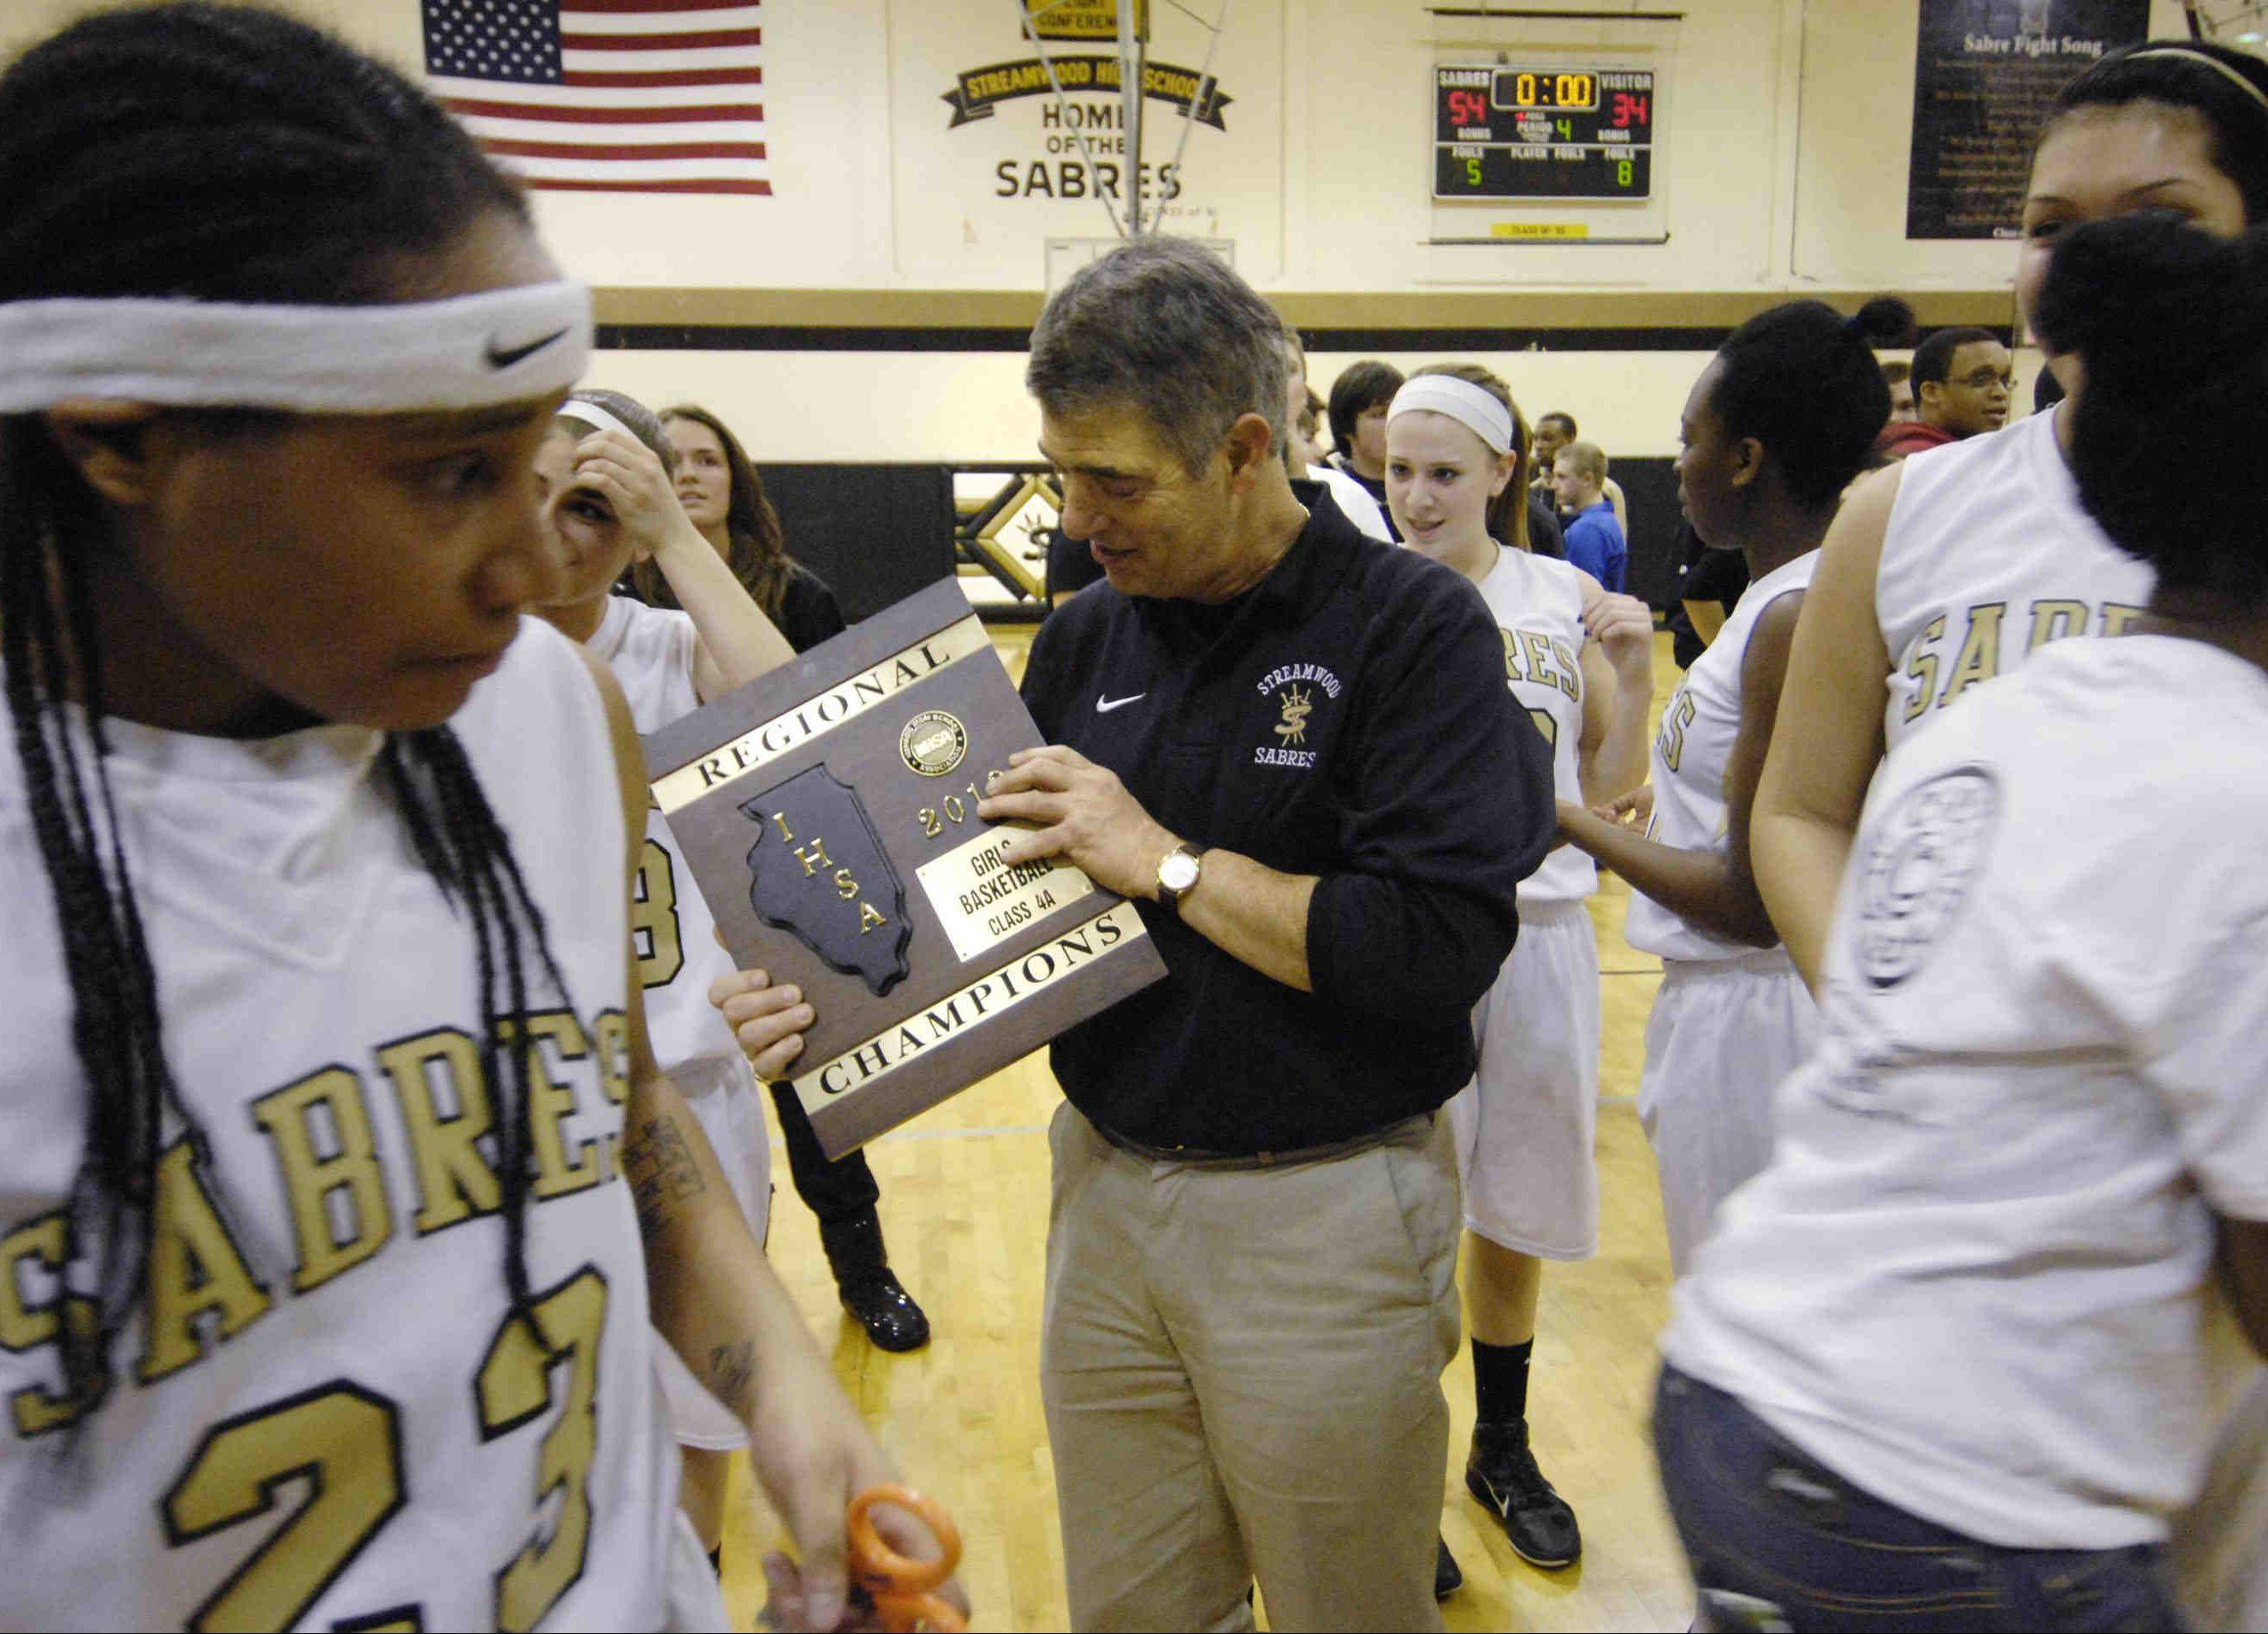 Streamwood girls basketball coach George Rosner admires the regional championship plaque his team won Thursday night, beating South Elgin 54-34 in the Class 4A final at Streamwood. It's the Sabres' first regional crown since 1988, a team which was also coached by Rosner.